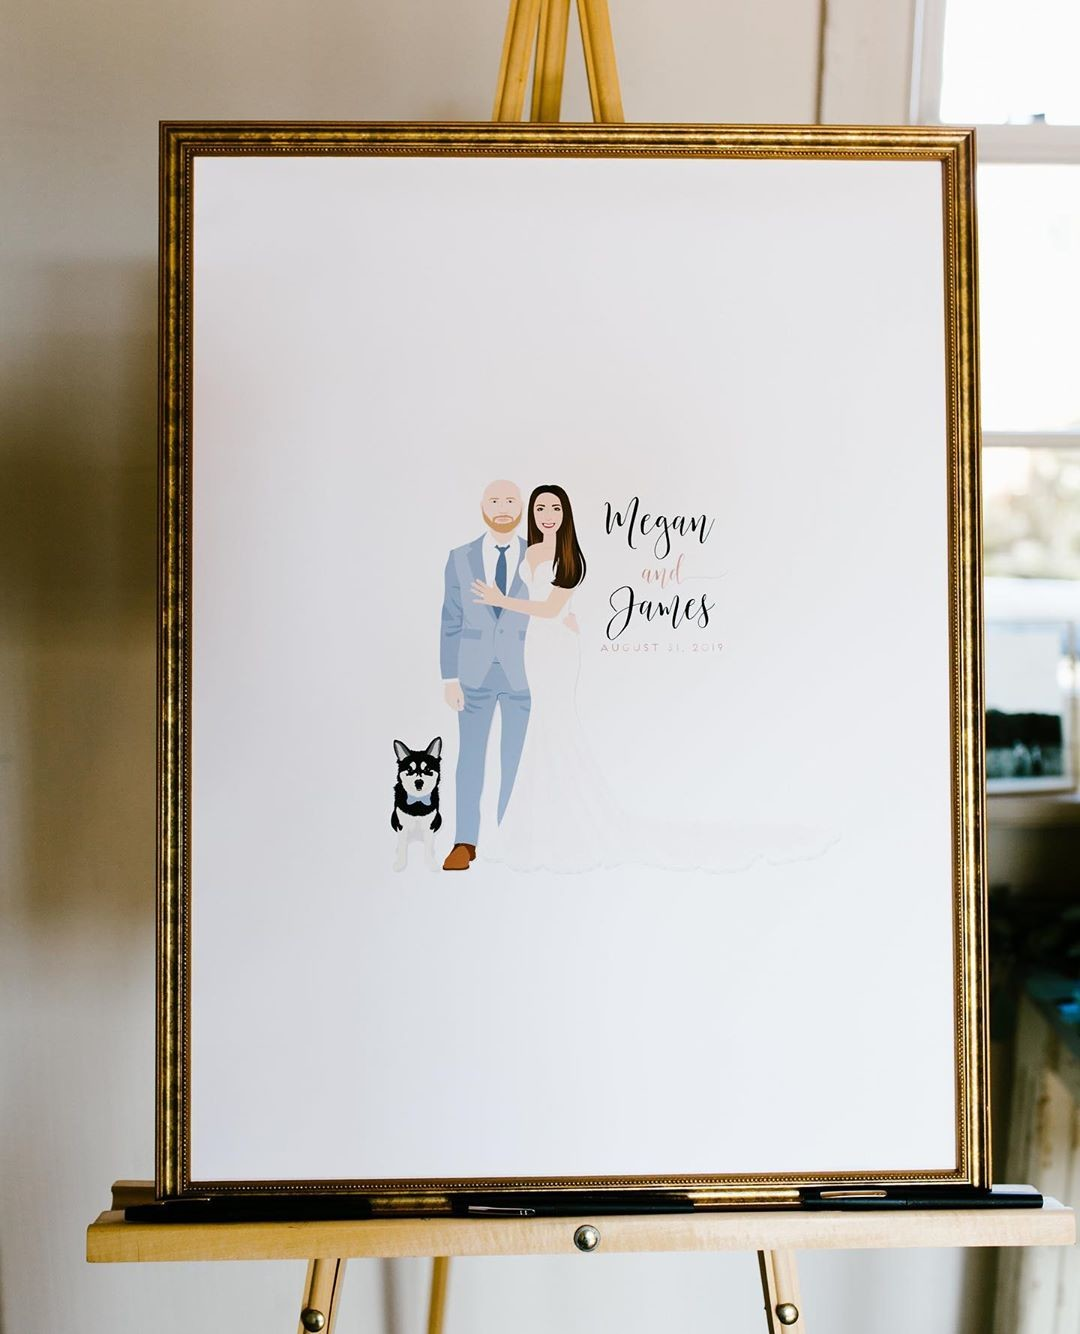 ⁠We are not lying when we say, send us MORE of your wedding photos! 🙌 We love to see your guestbooks, cocktail signs, welcome